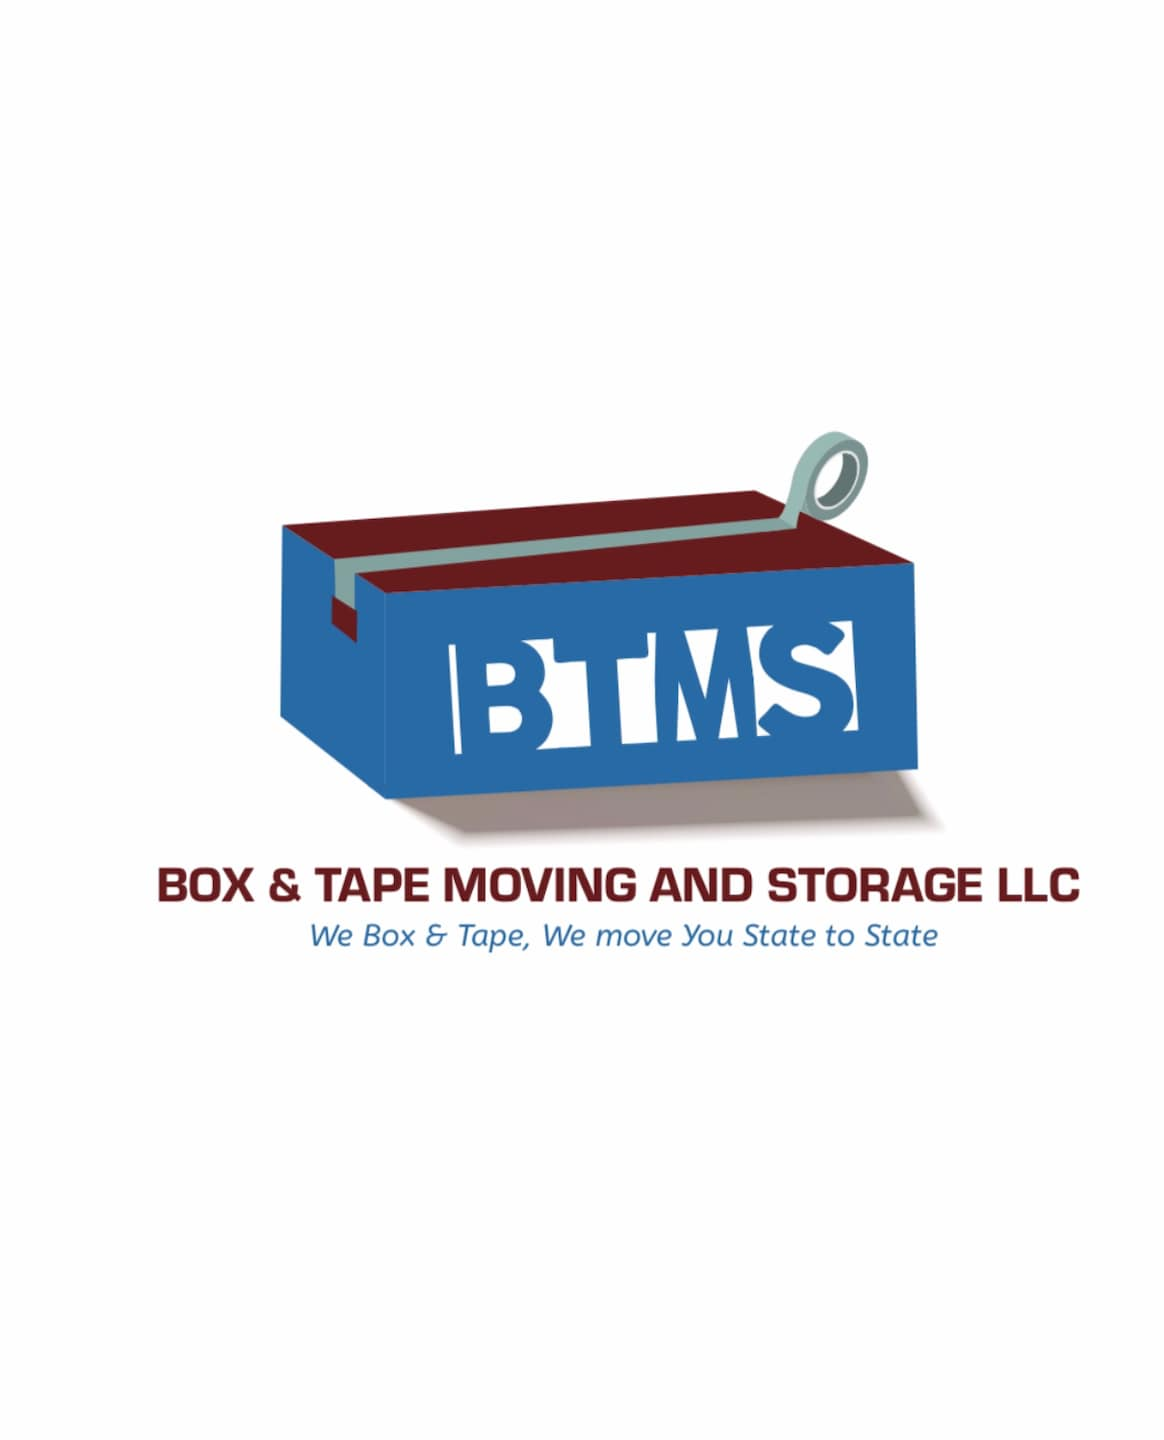 Box & Tape Moving and Storage LLC